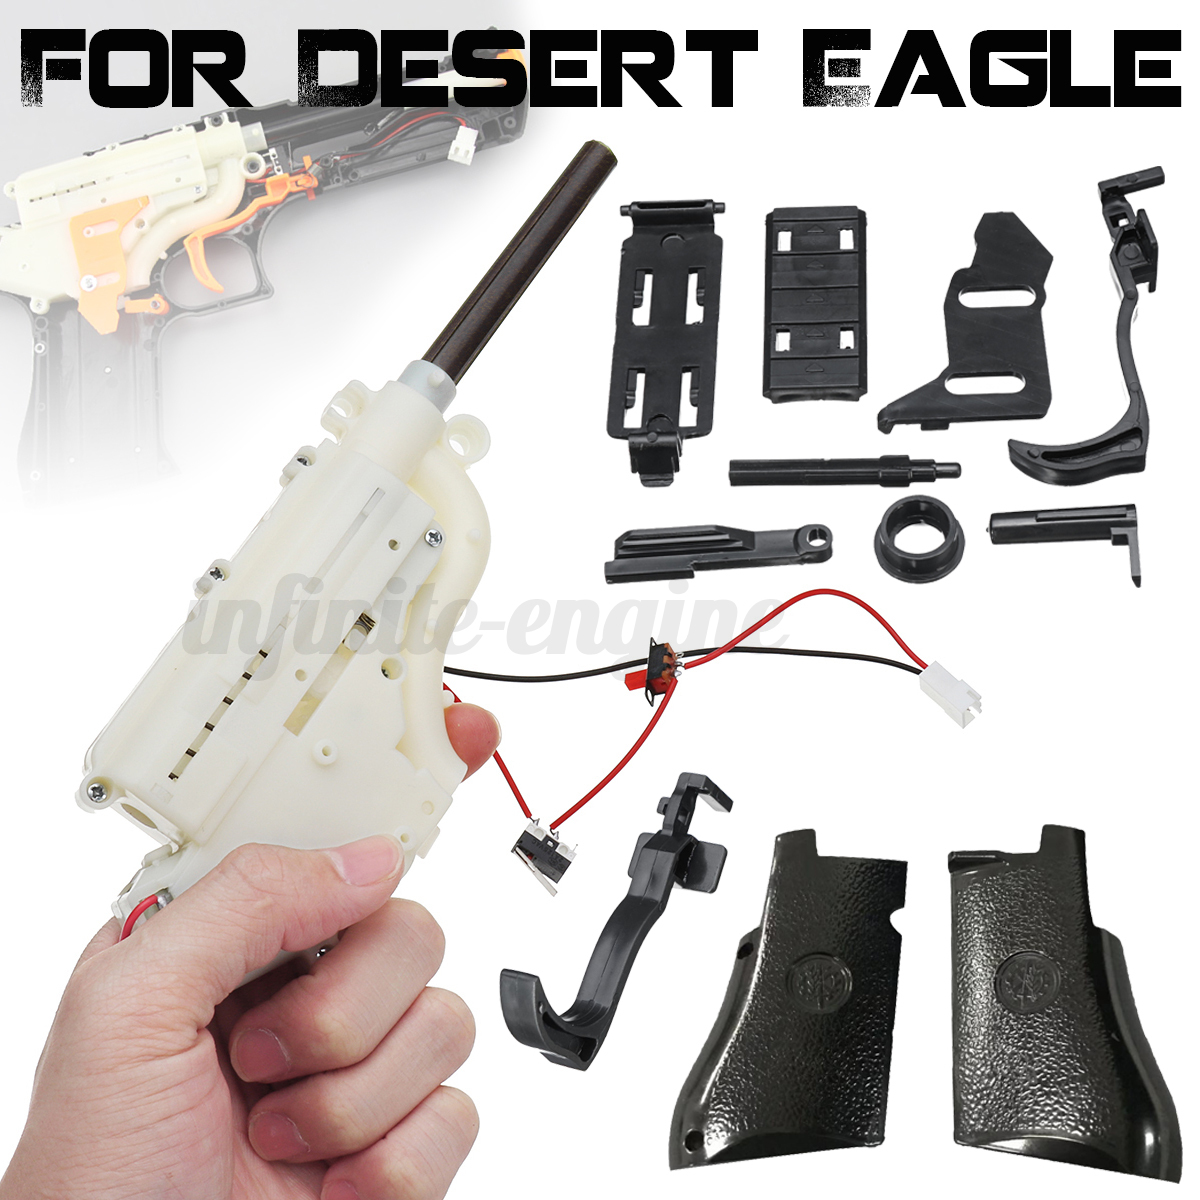 Gear-box-Trigger-Grip-Panels-Parts-For-RX617-RenXiang-Desert-Eagle-Gel-Ball-Toy